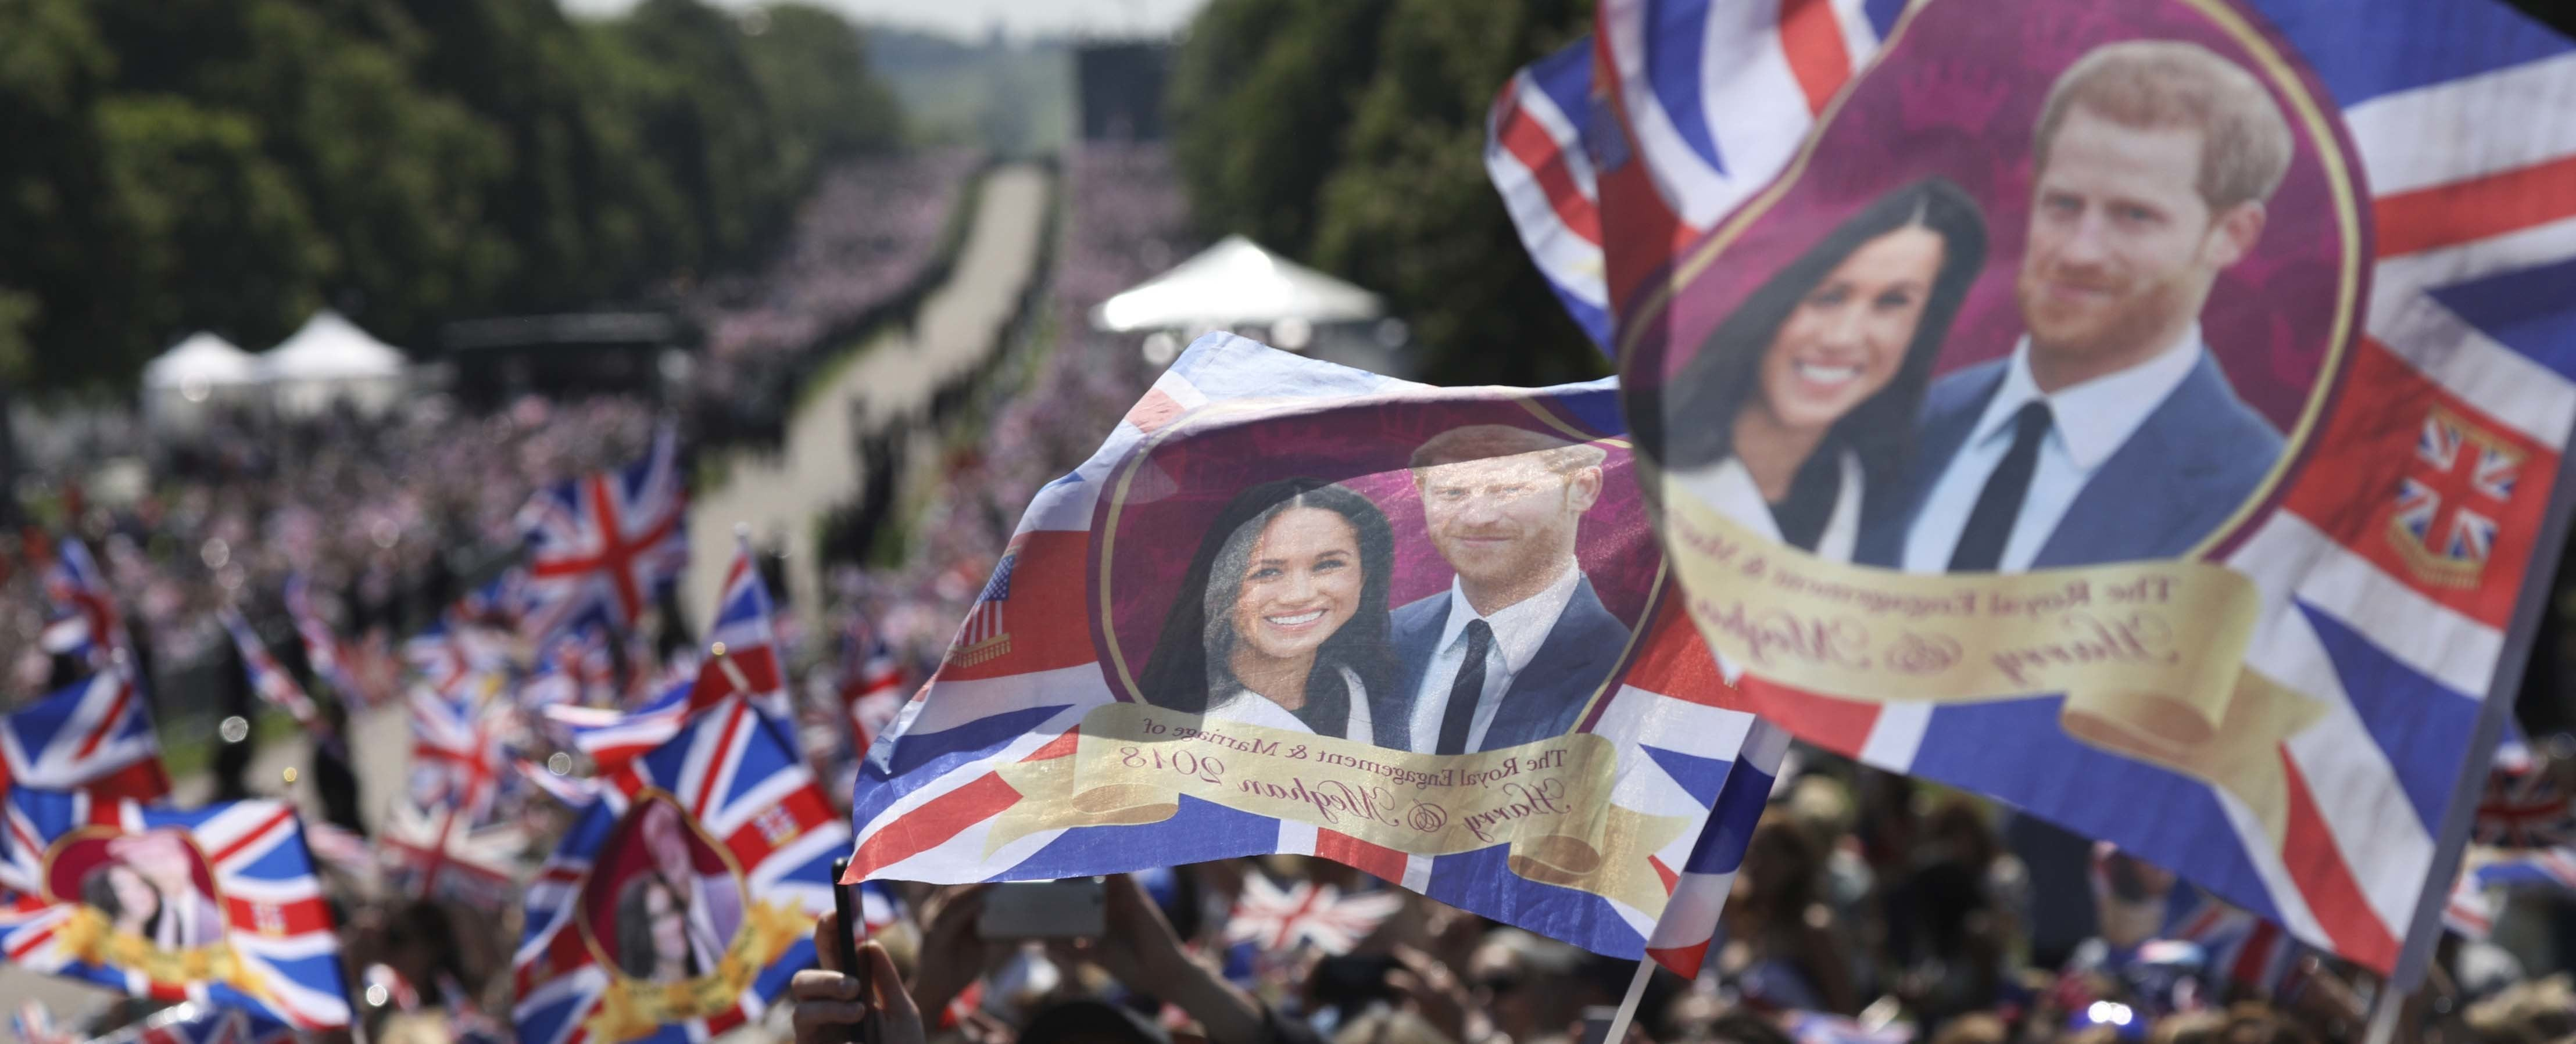 Royal fans wave flags with when waiting for the newlyweds to go past after the wedding ceremony of Prince Harry and Meghan Markle at St. George's Chapel in Windsor Castle in Windsor, near London, England, Saturday, May 19, 2018. (AP Photo/Emilio Morenatti) — Copyright 2018 The Associated Press. All rights reserved.